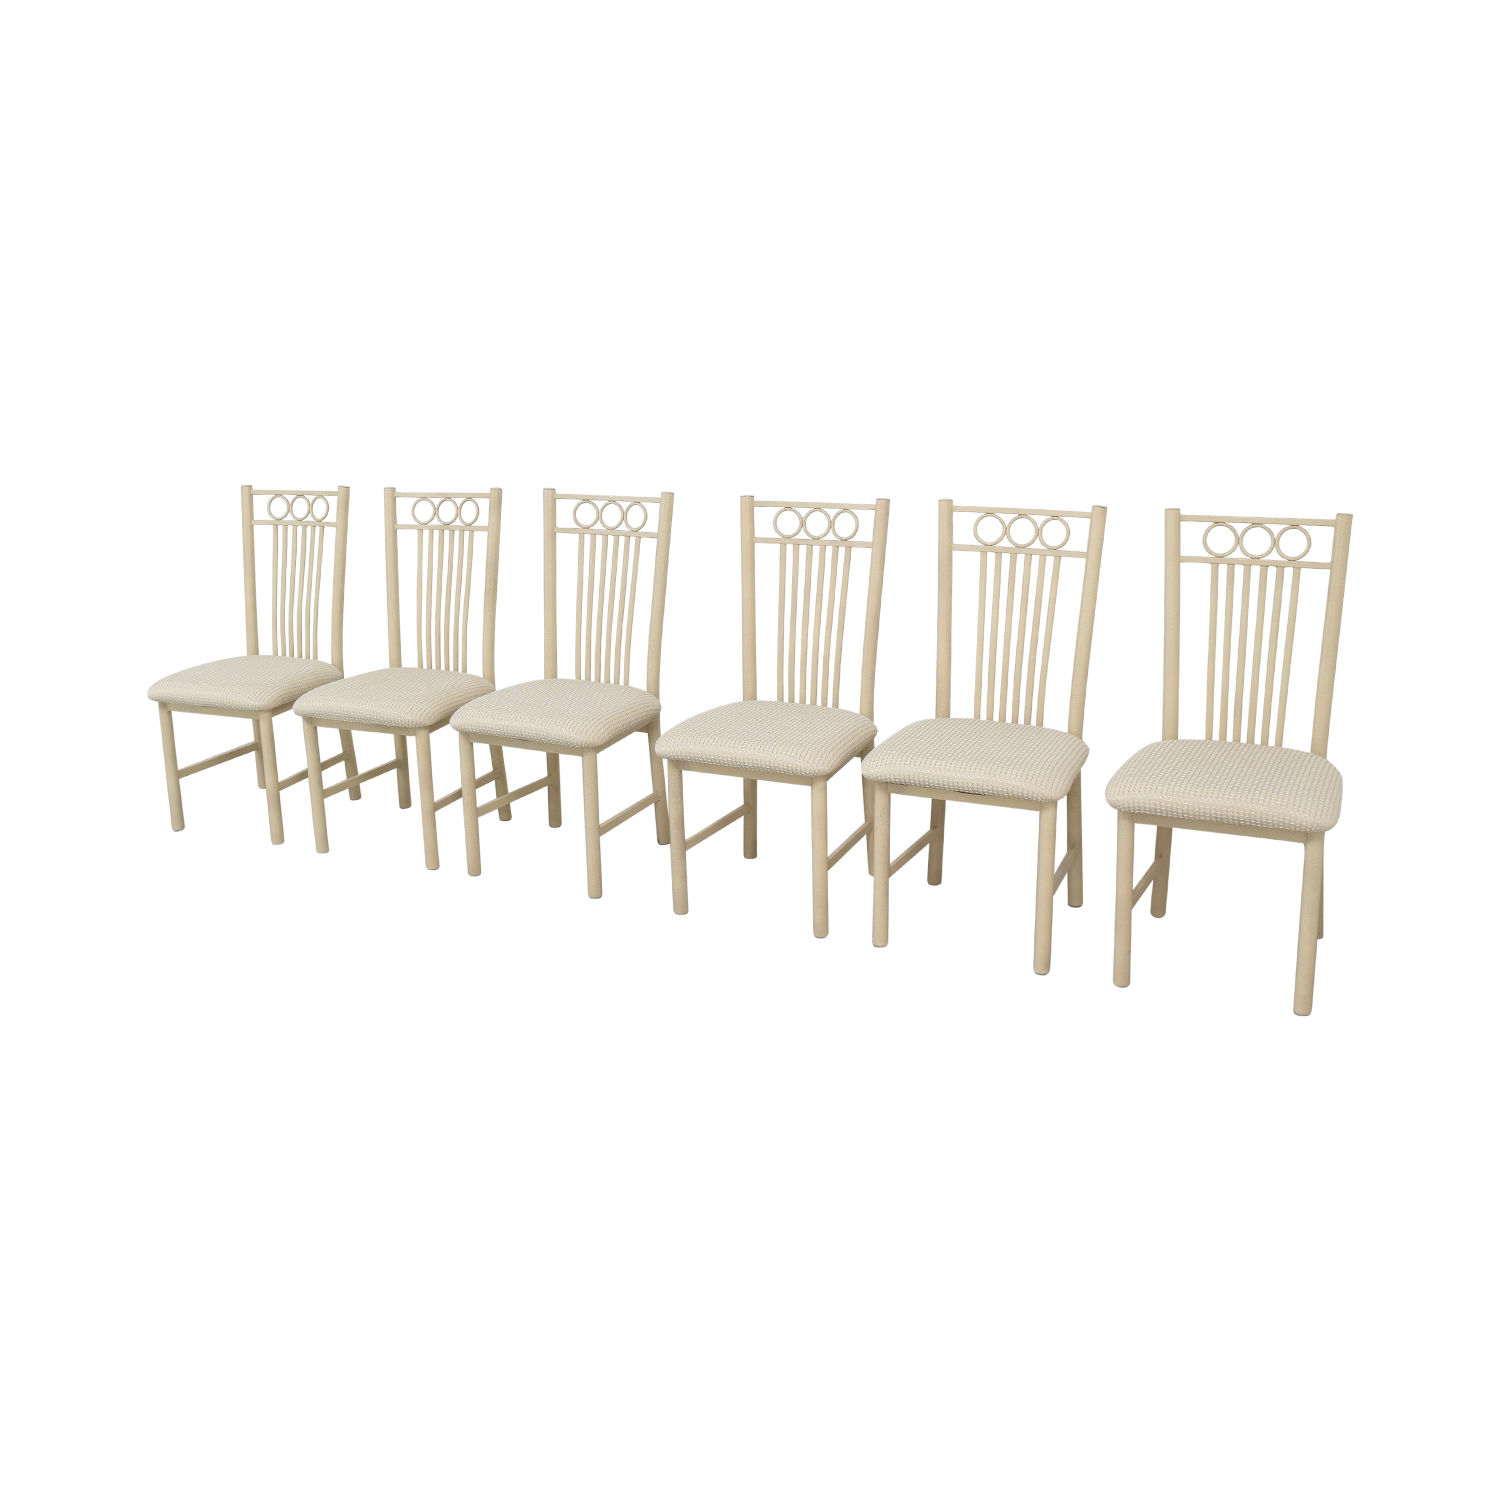 buy Raymour & Flanigan Dining Chairs Raymour & Flanigan